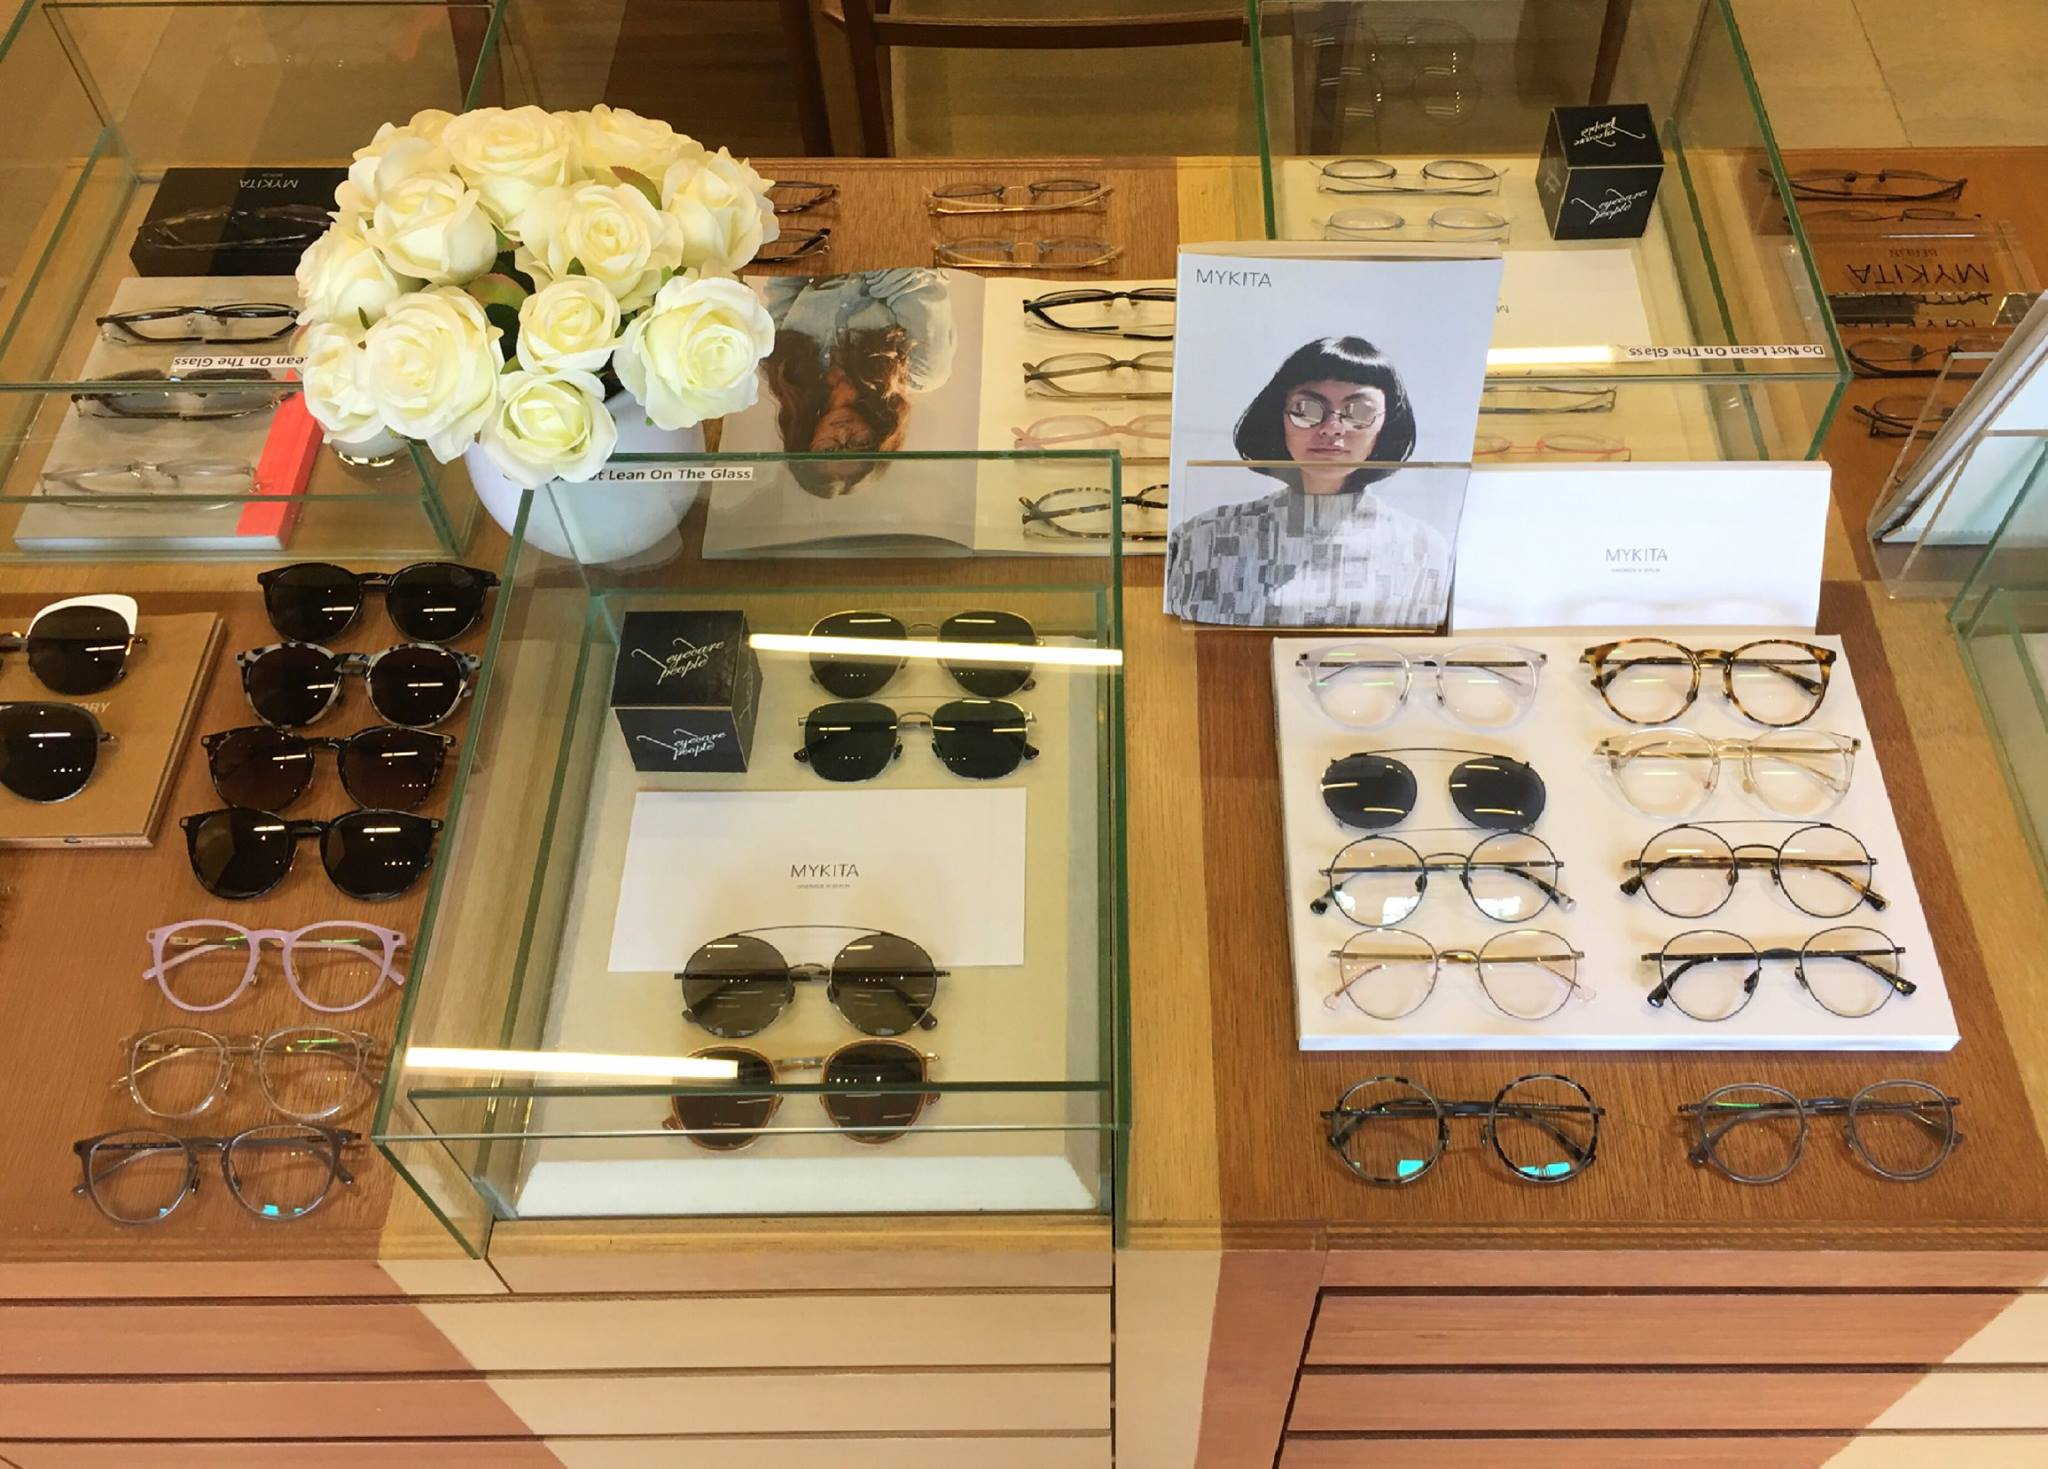 5 Best Optical and Sunglasses Shop in Singapore Shop Buy Prescription Glasses Singapore 2018 Cheap Good Optic Butler dh Sunglass Atlantic Optical Eye Care People